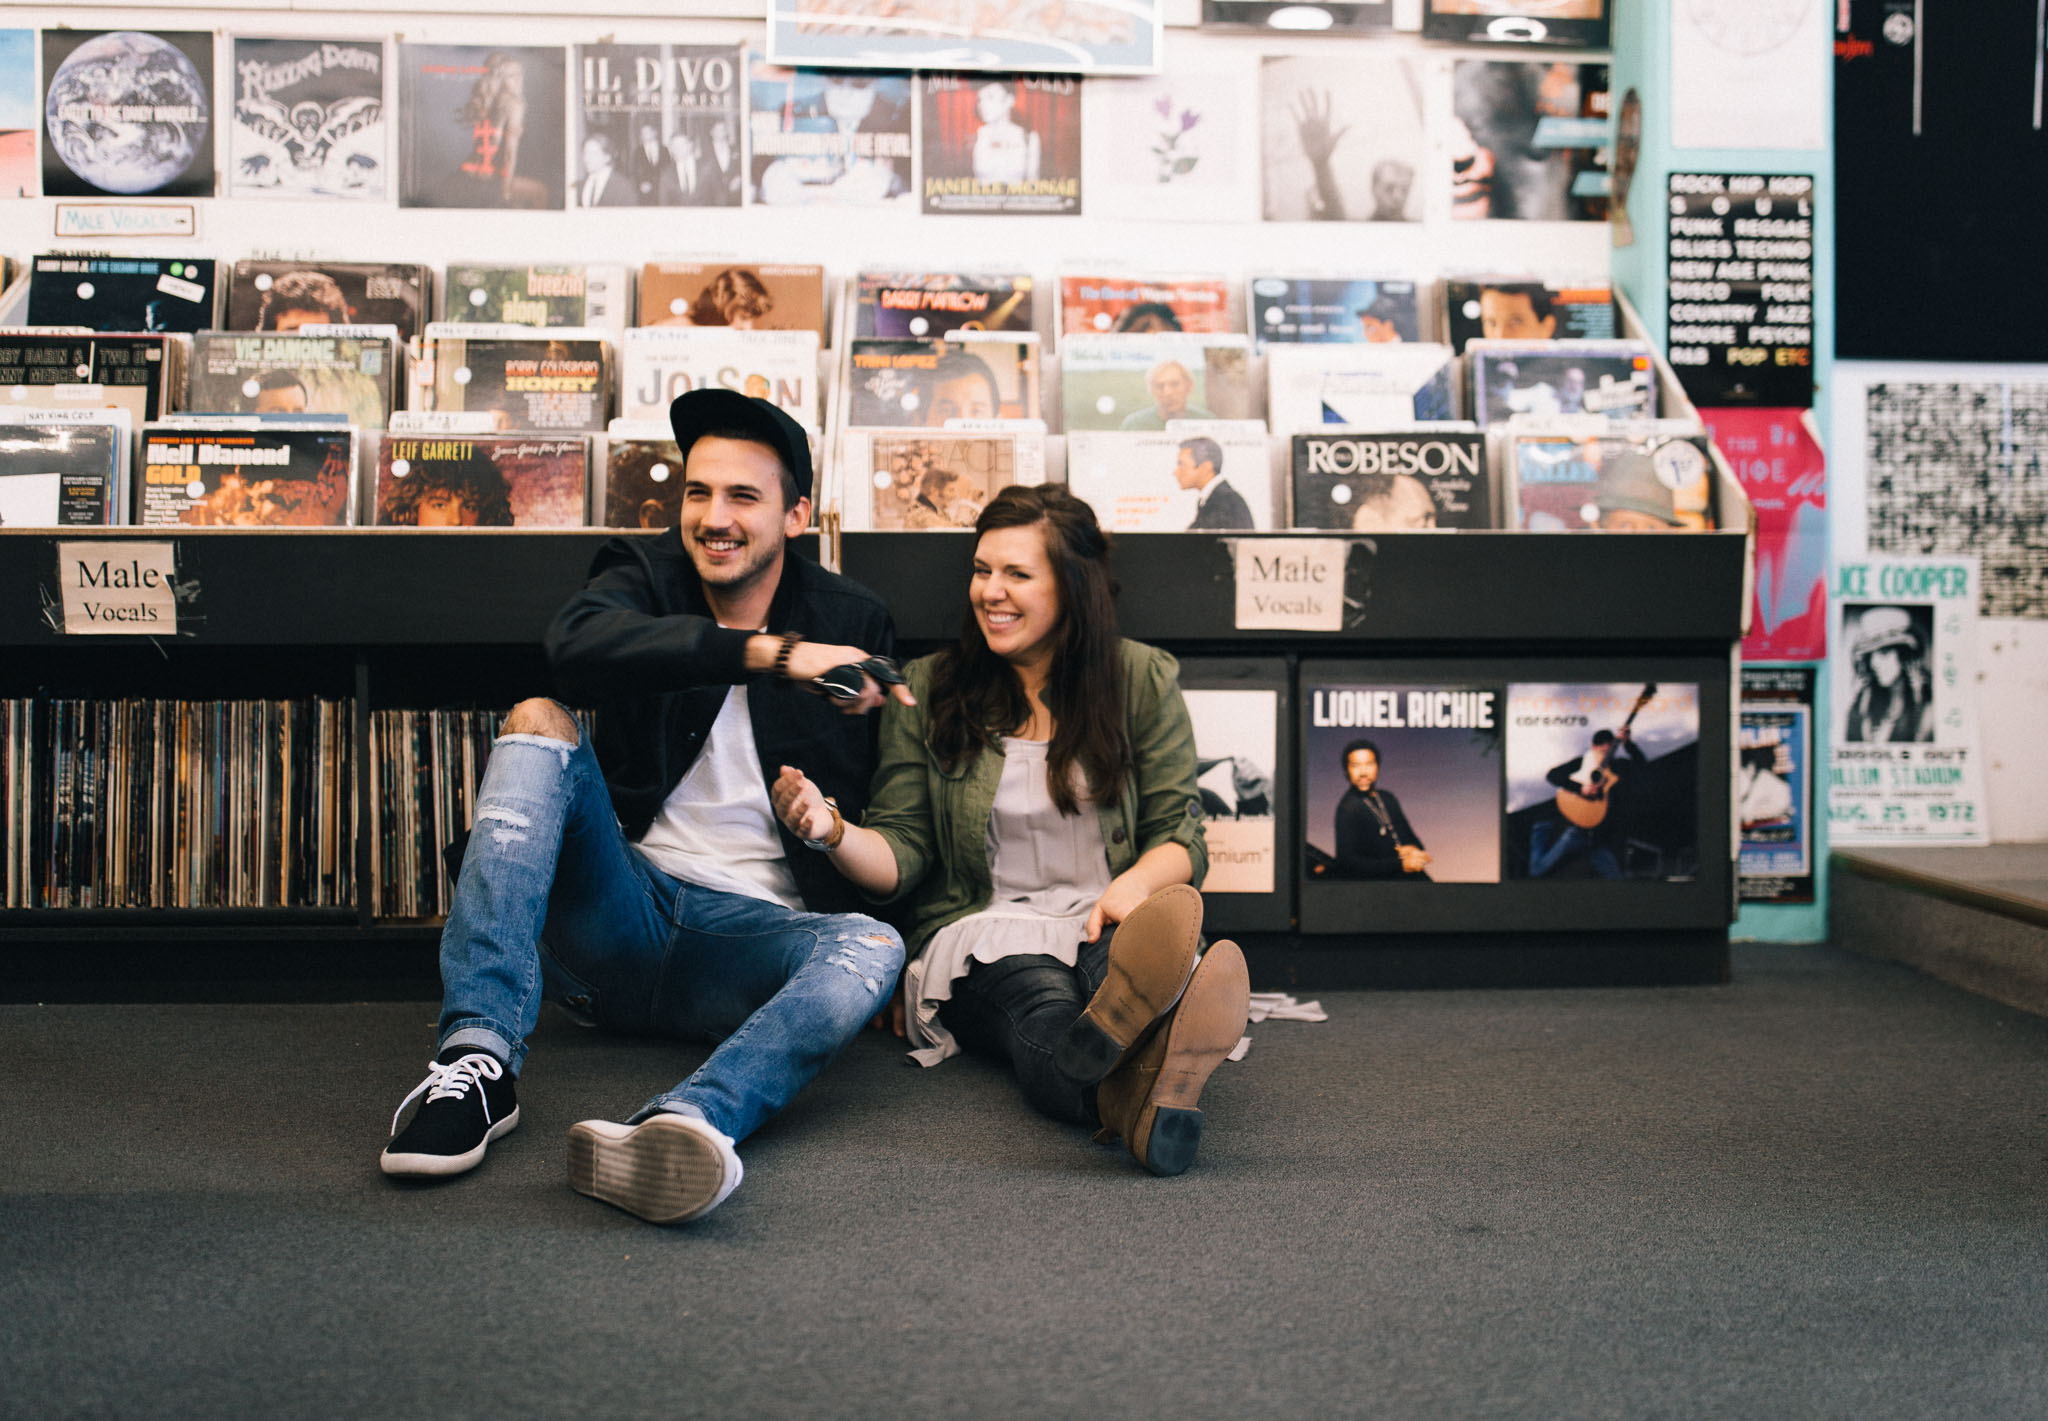 2018_02_02 Bryce and April Record Store Session Blog Edited Full Resolution 0023.jpg